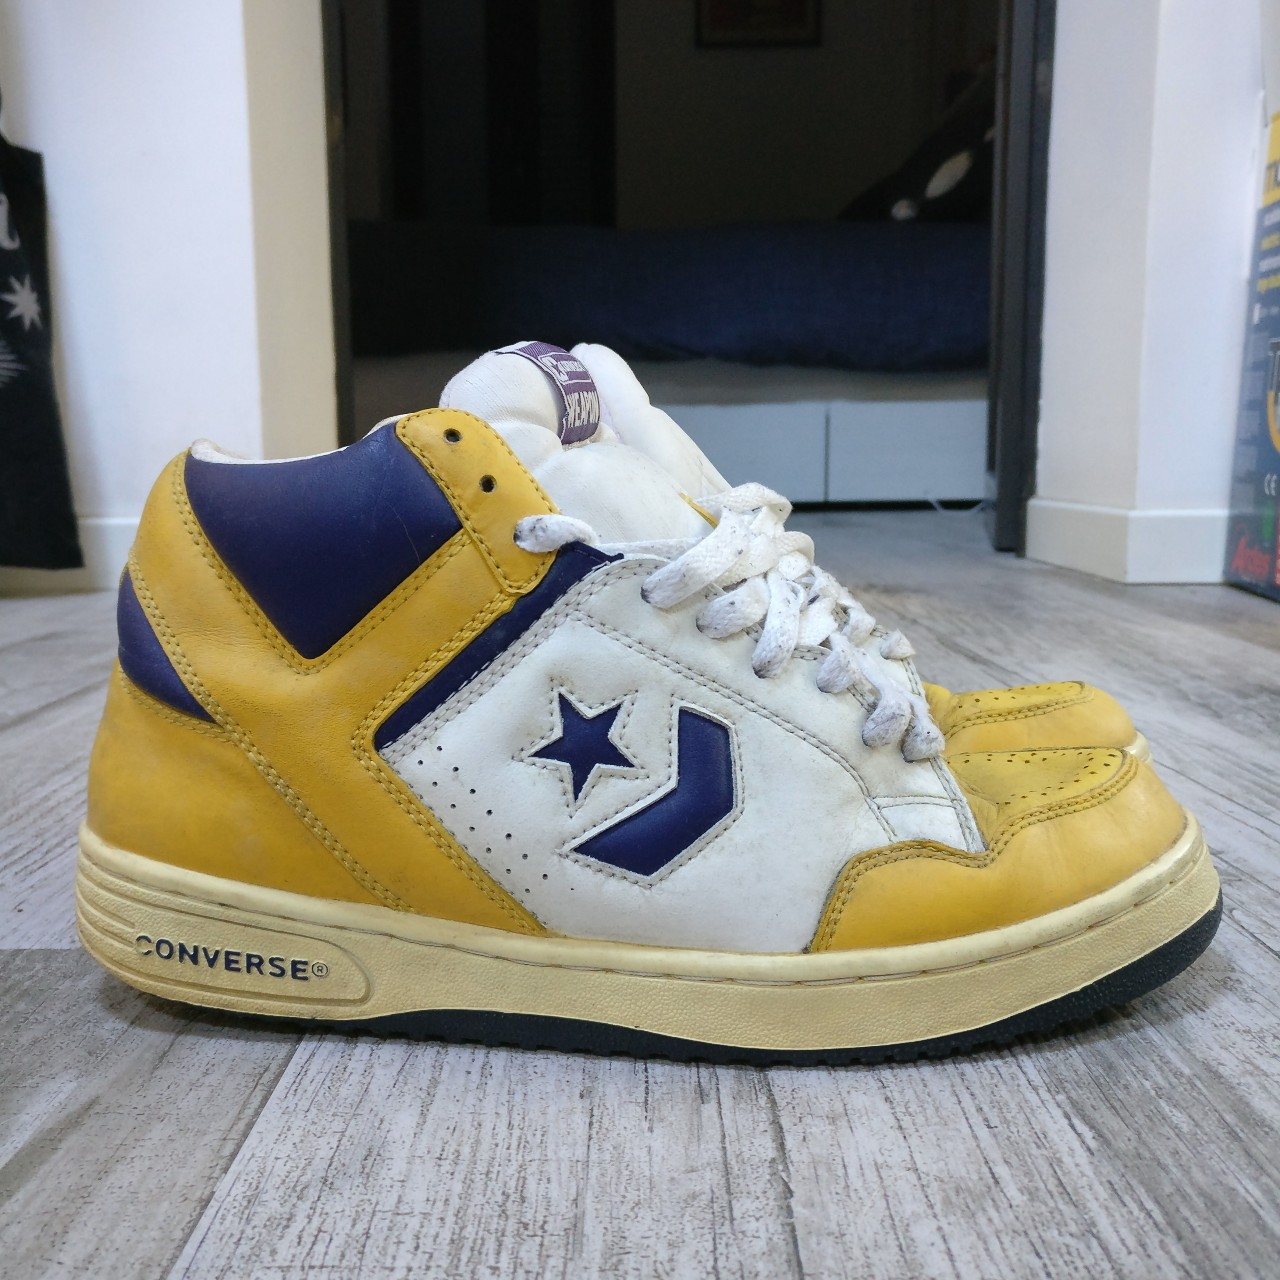 Converse Weapon 86 Lakers edition